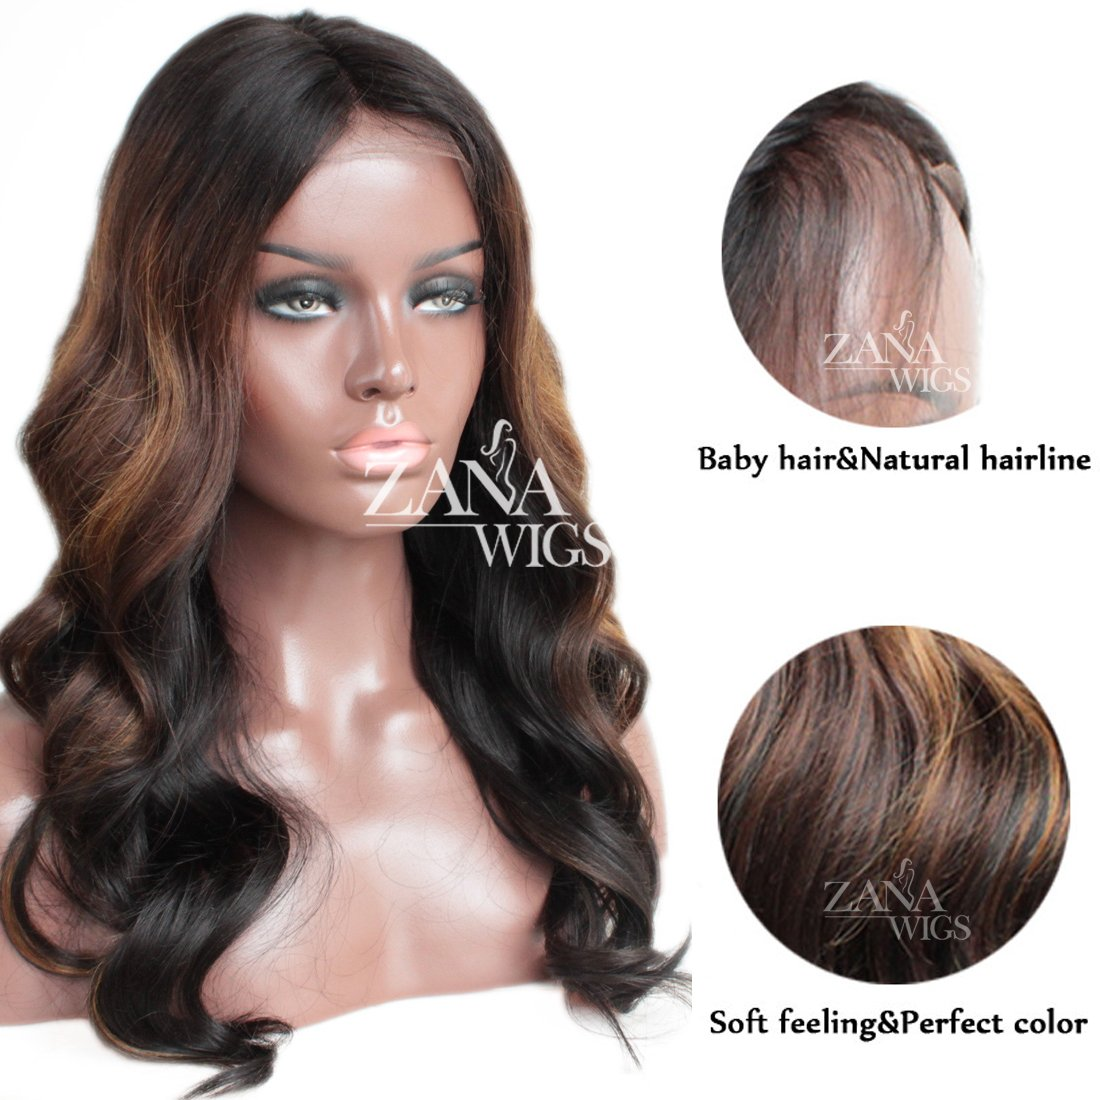 ZANA Brazilian Virgin Remy Hair Lace Front Wigs with Baby Hair Body Wave Glueless Human Hair Wigs for Black Women Ombre Color by Zana (Image #4)